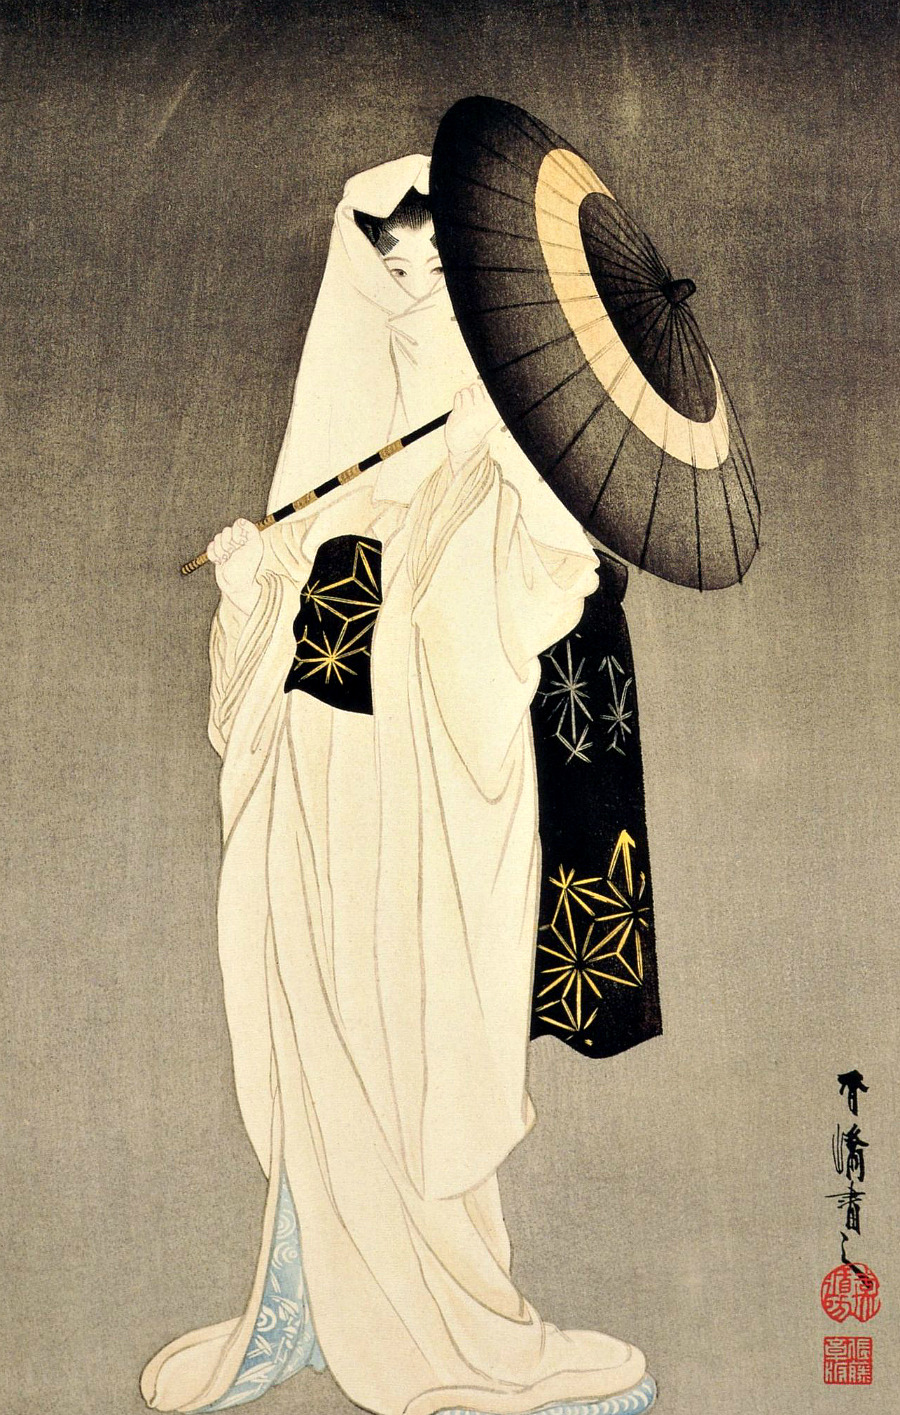 sombhatt:  The spirit of the heron maiden woodblock print by Taniguchi Kokyo (1864-1915), dated 1925